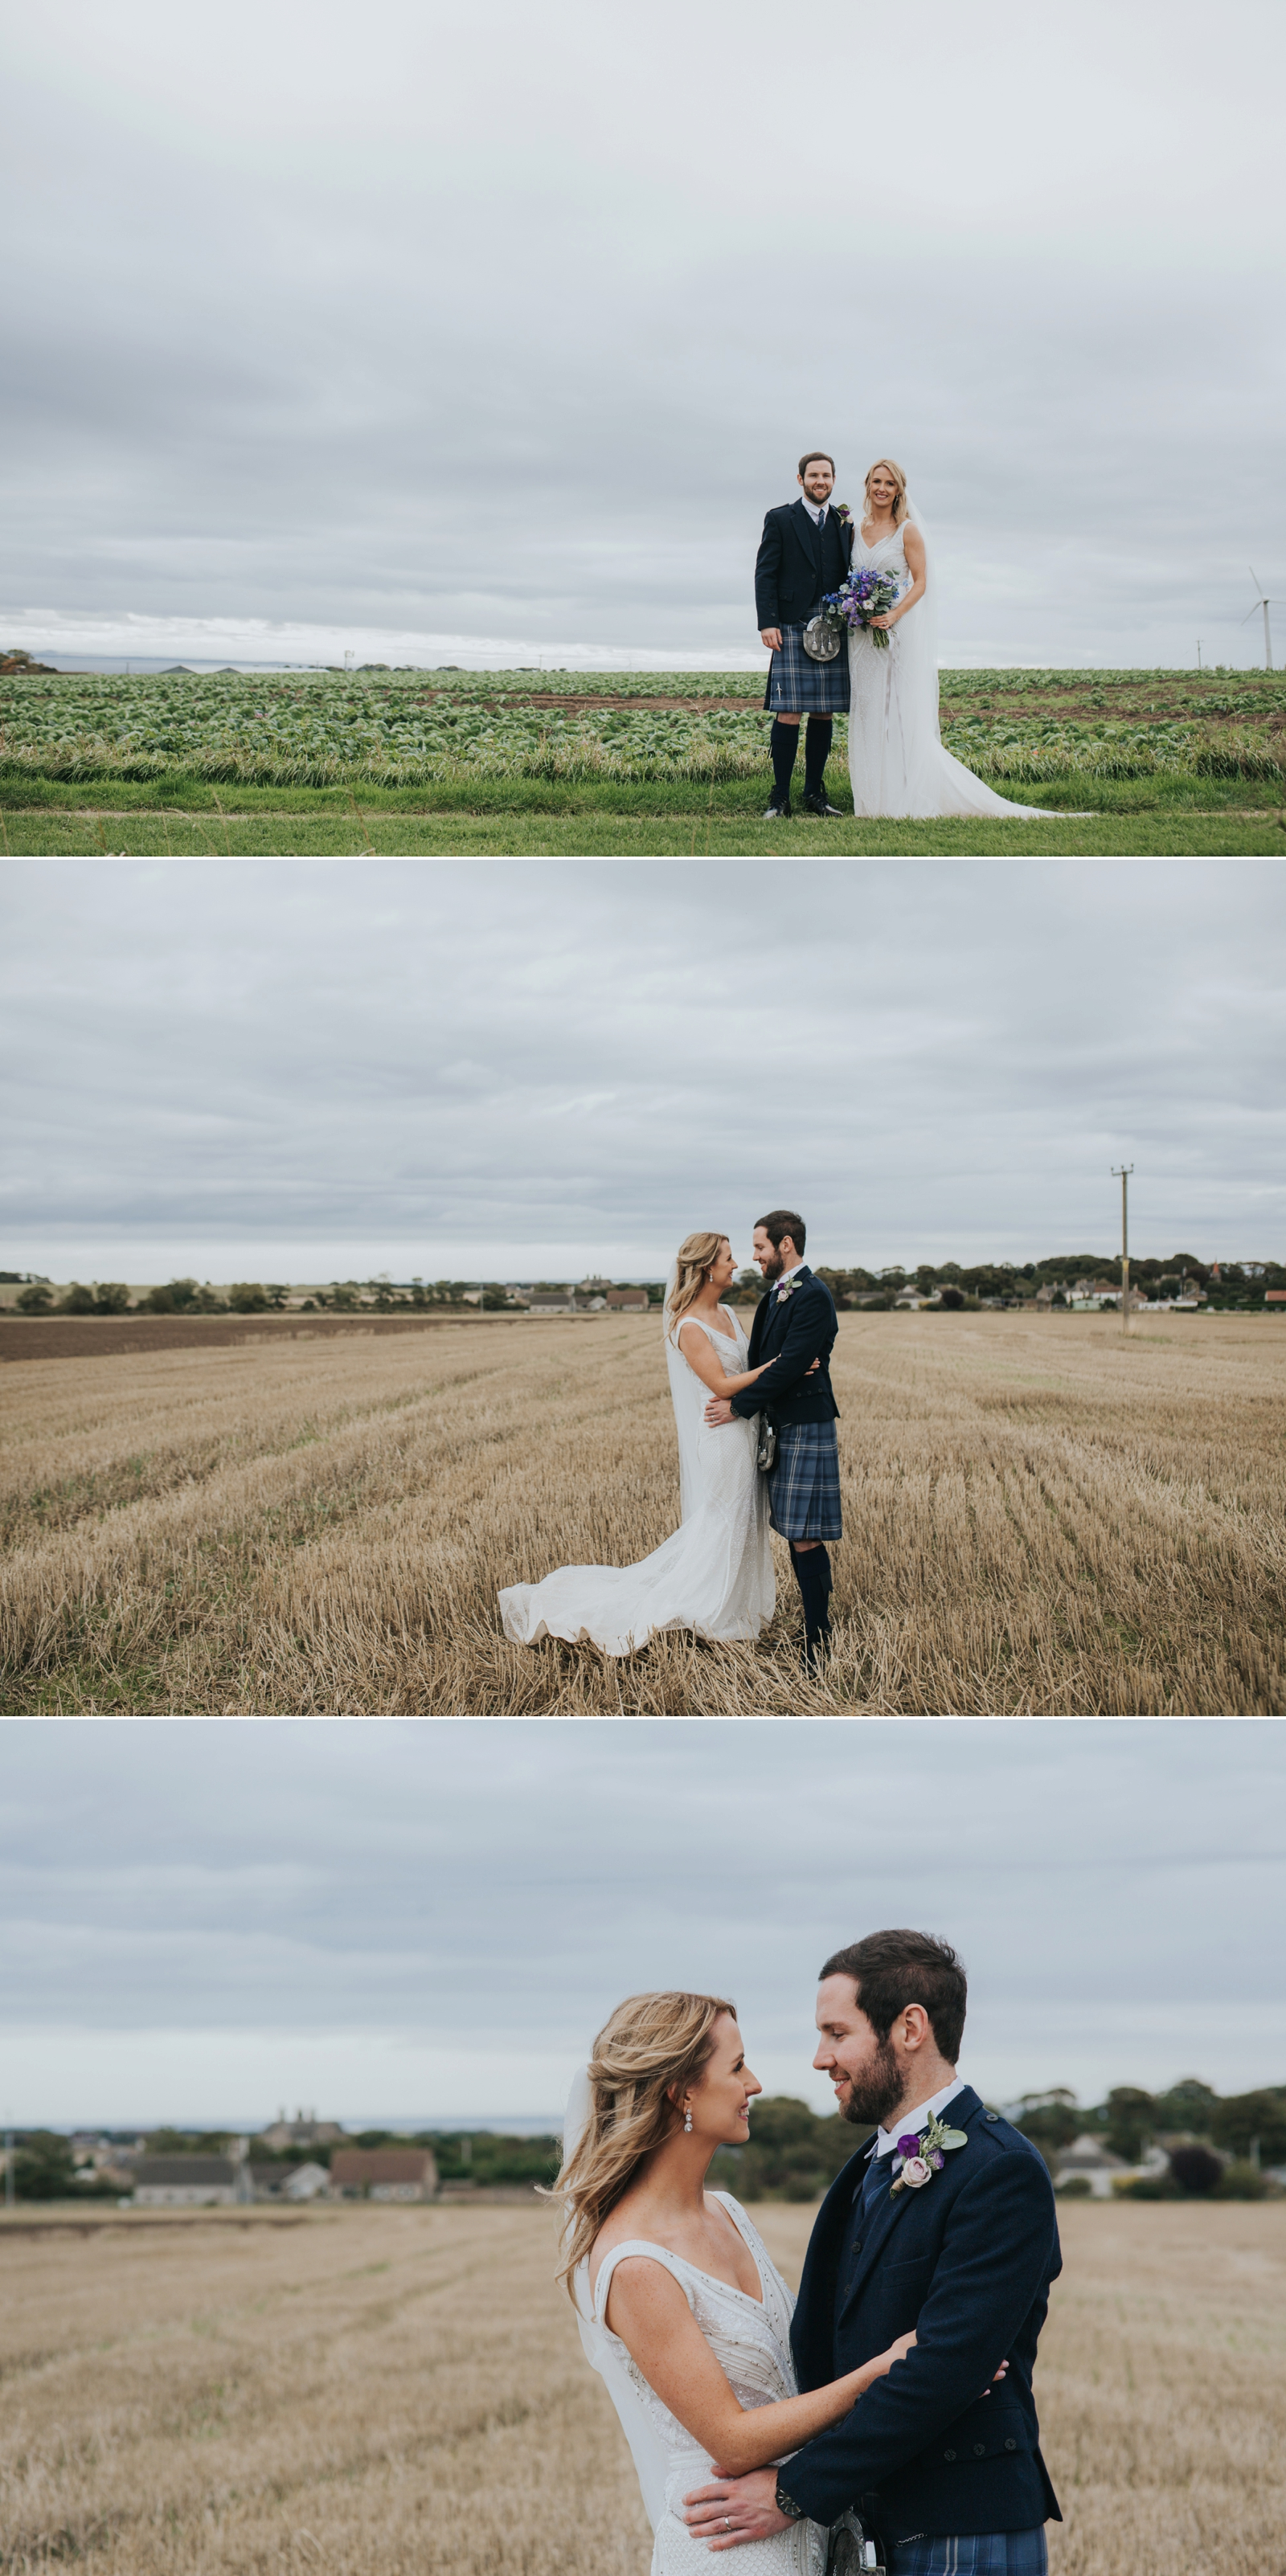 cow-shed-crail-rustic-wedding-gemma-andy-loraine-ross-photographygemma-andy-wedding-0555.jpg